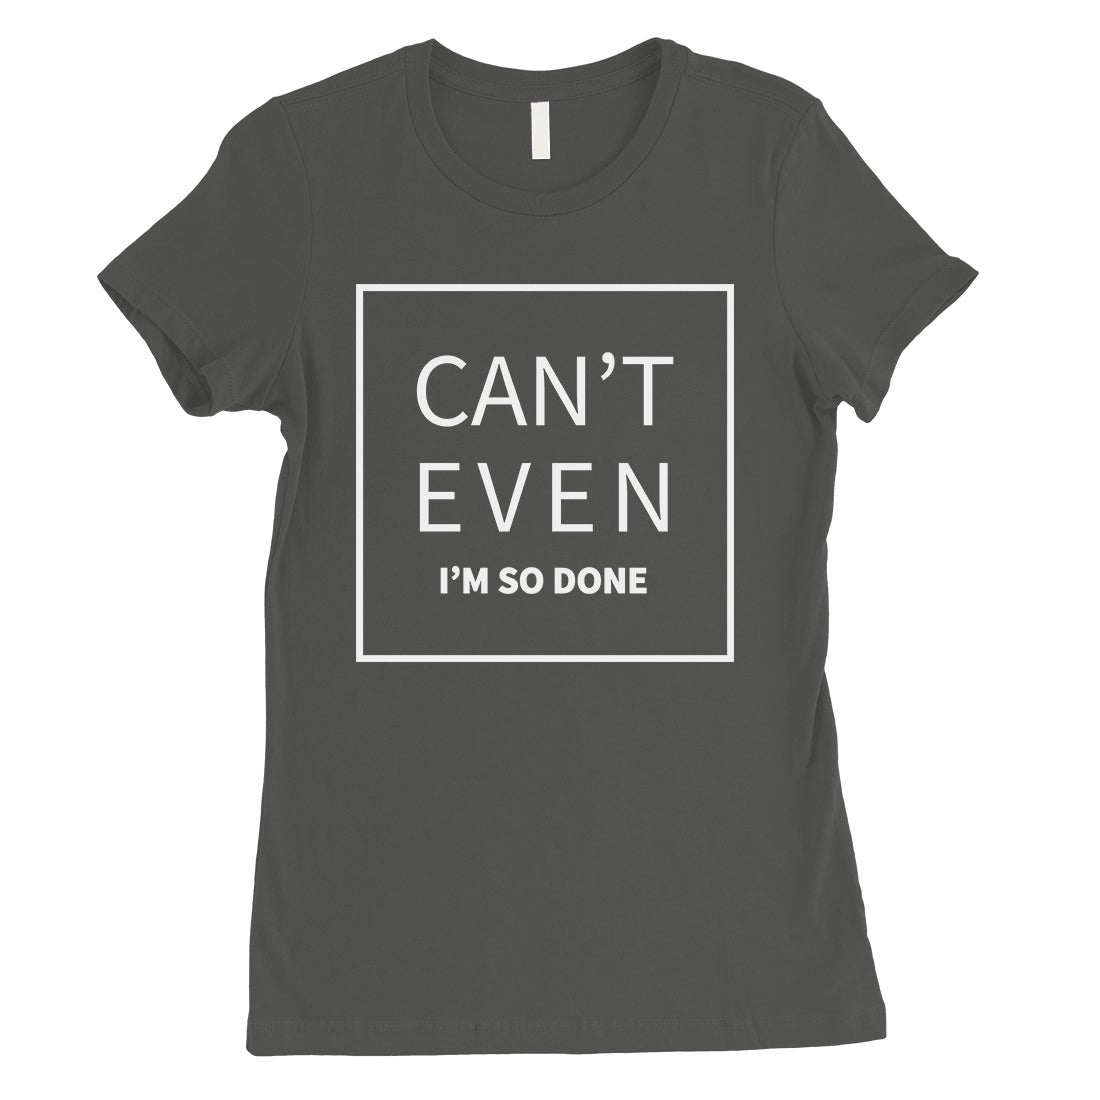 1fde3f0ba Shop 365 Printing Can't Even So Done Womens Cool Grey Mood Silly Attitude T- Shirt - Free Shipping On Orders Over $45 - Overstock - 28092569